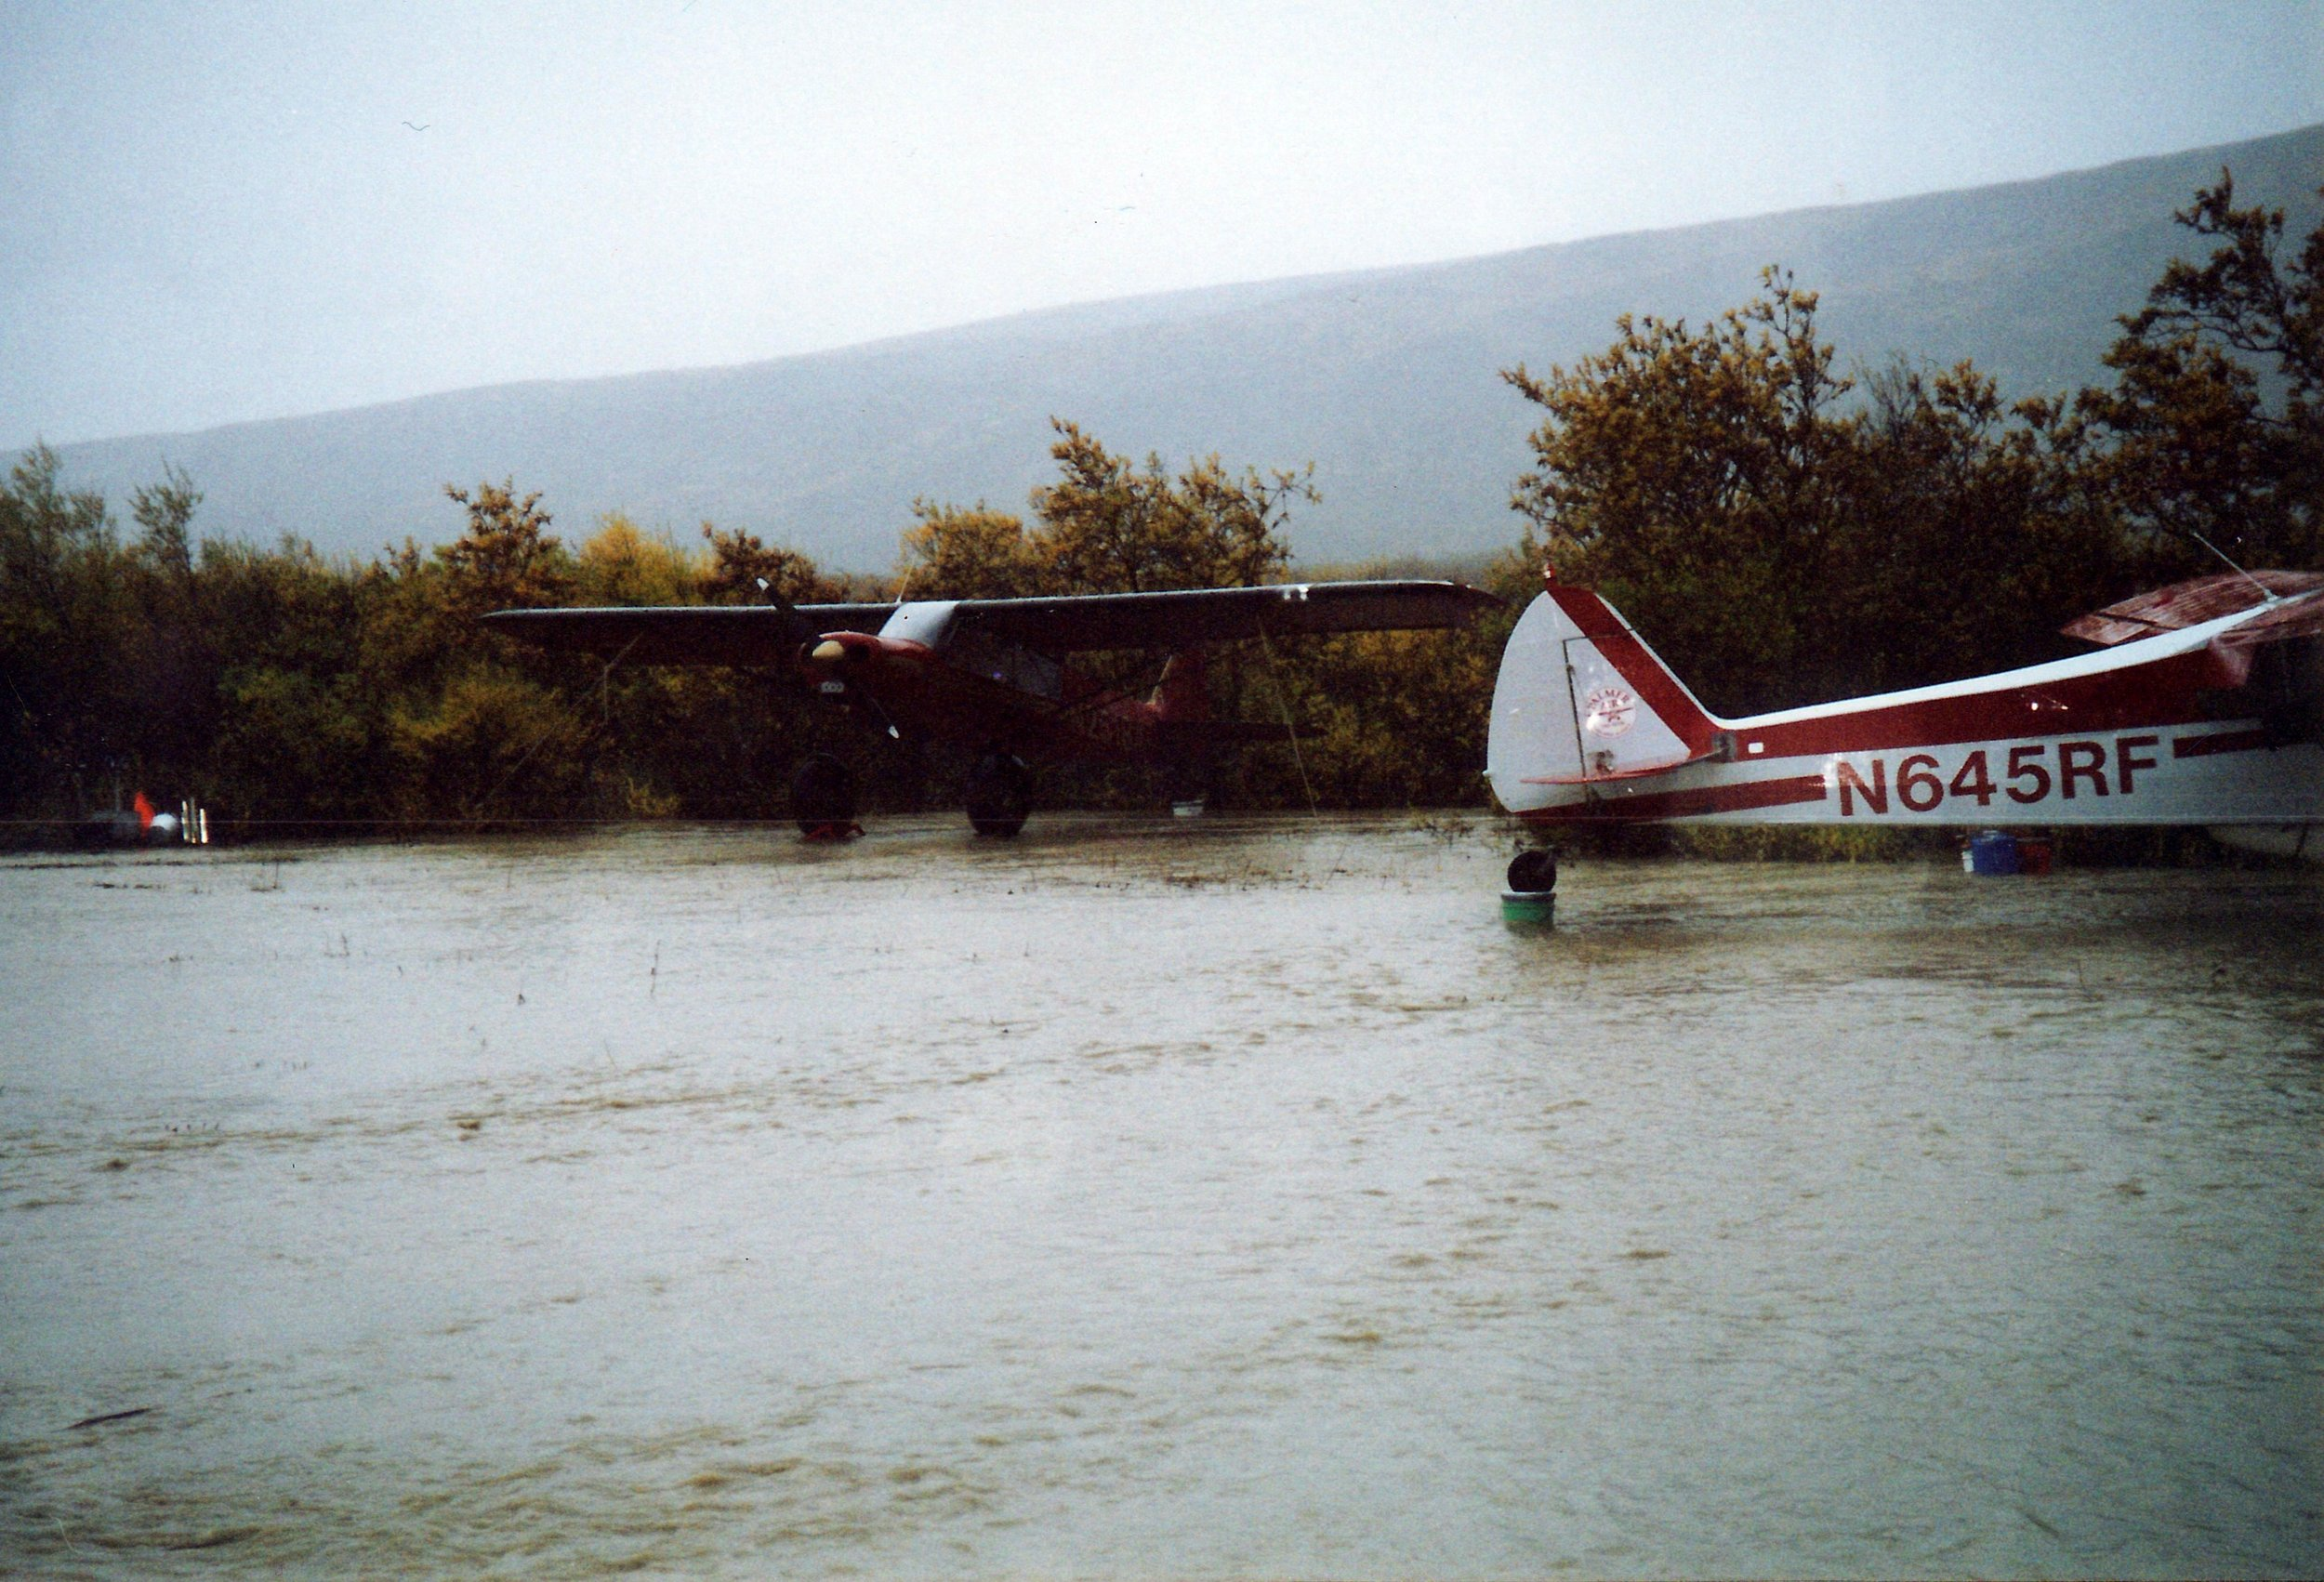 Planes on crates and buckets during one of the Dog Salmon River floods.